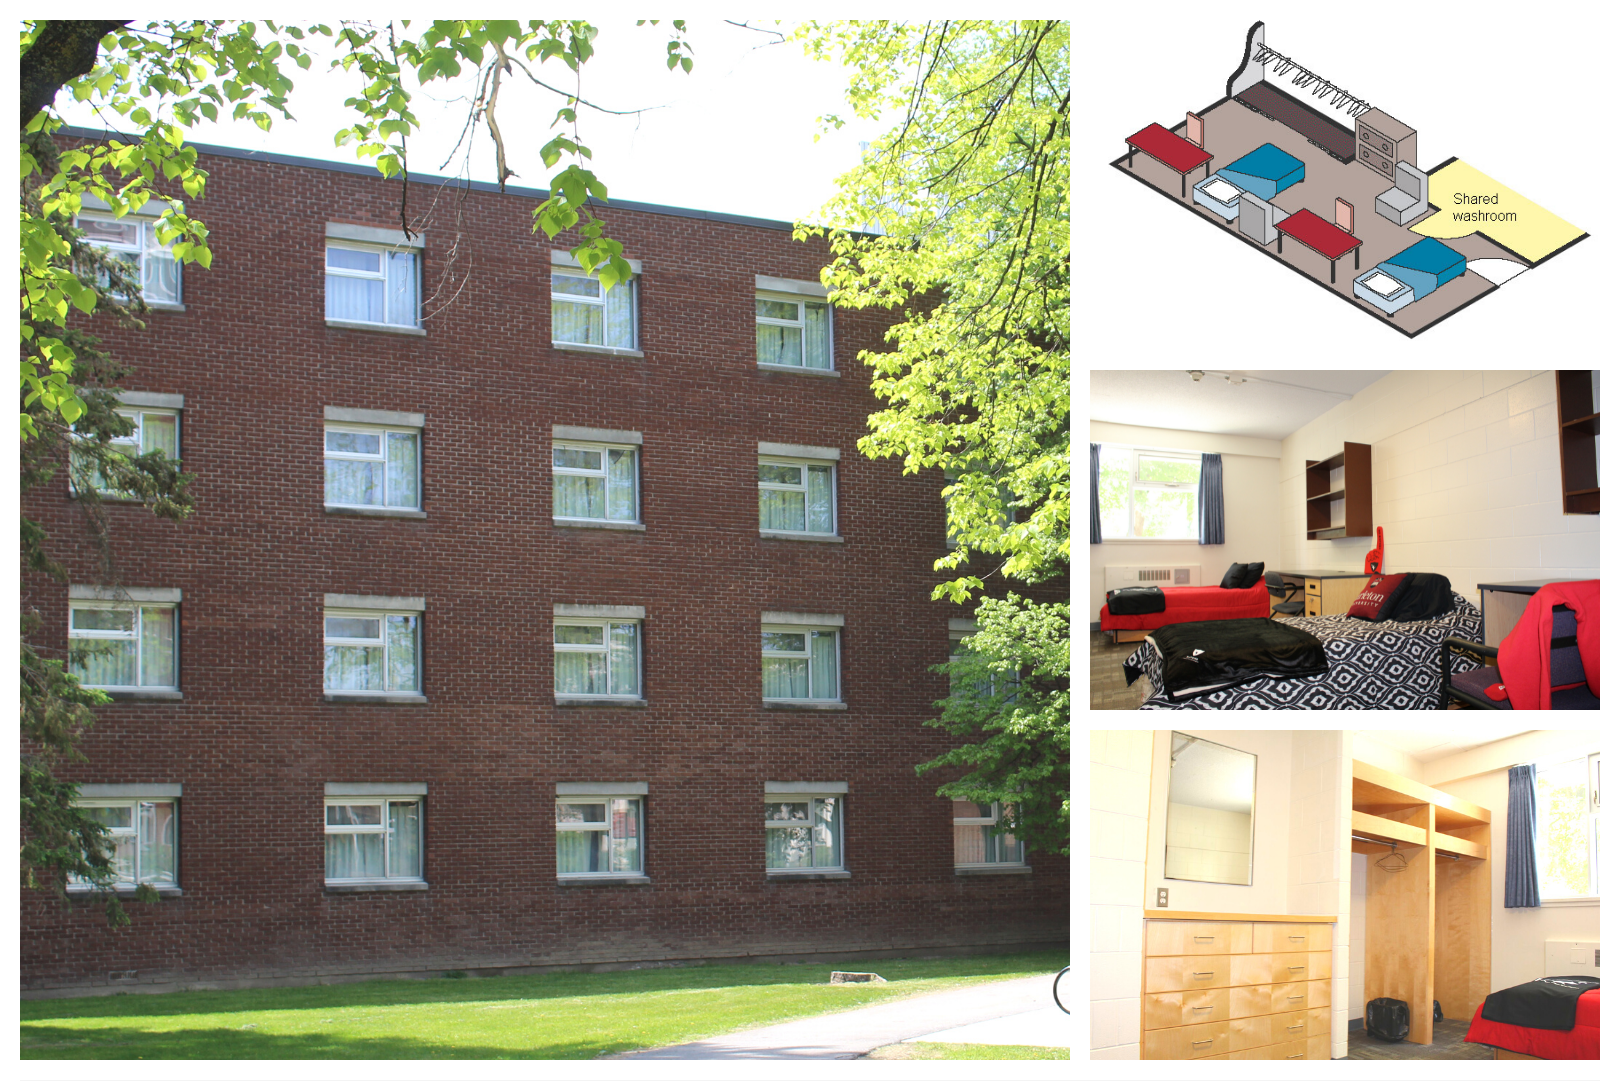 Images of Grenville House with floor plan and rooms. Building details: Opened in 1964, renovated in 2012, 4 floors, 1 elevator, 160 residents, mandatory meal plan